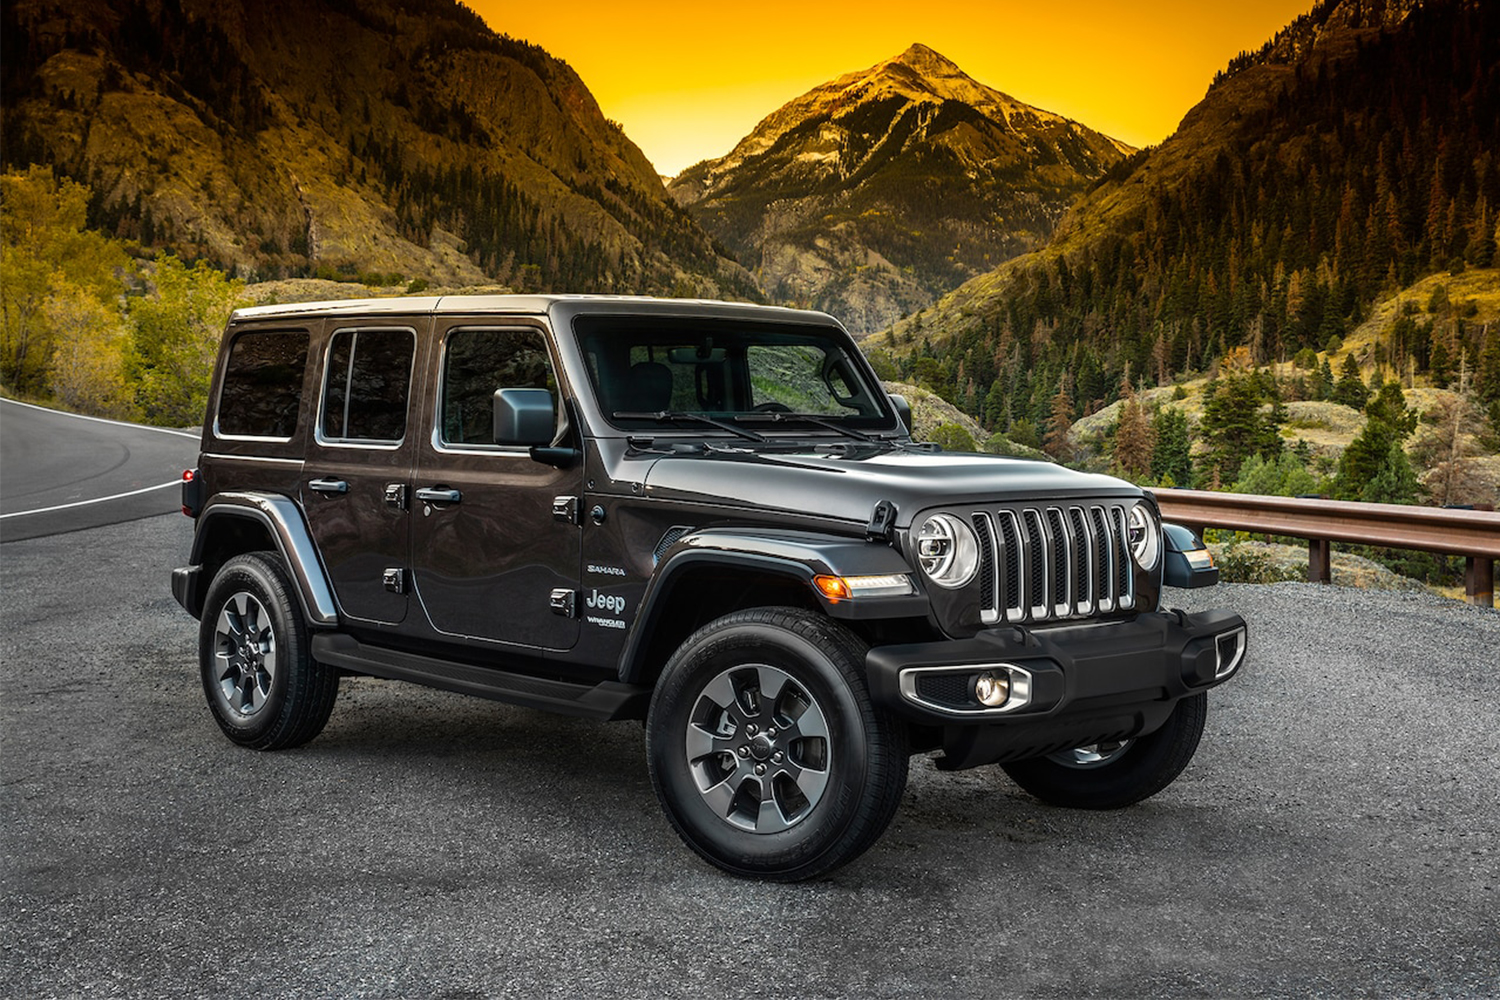 Dealerships across the U.S. are slashing prices on 2018 Jeep Wranglers.